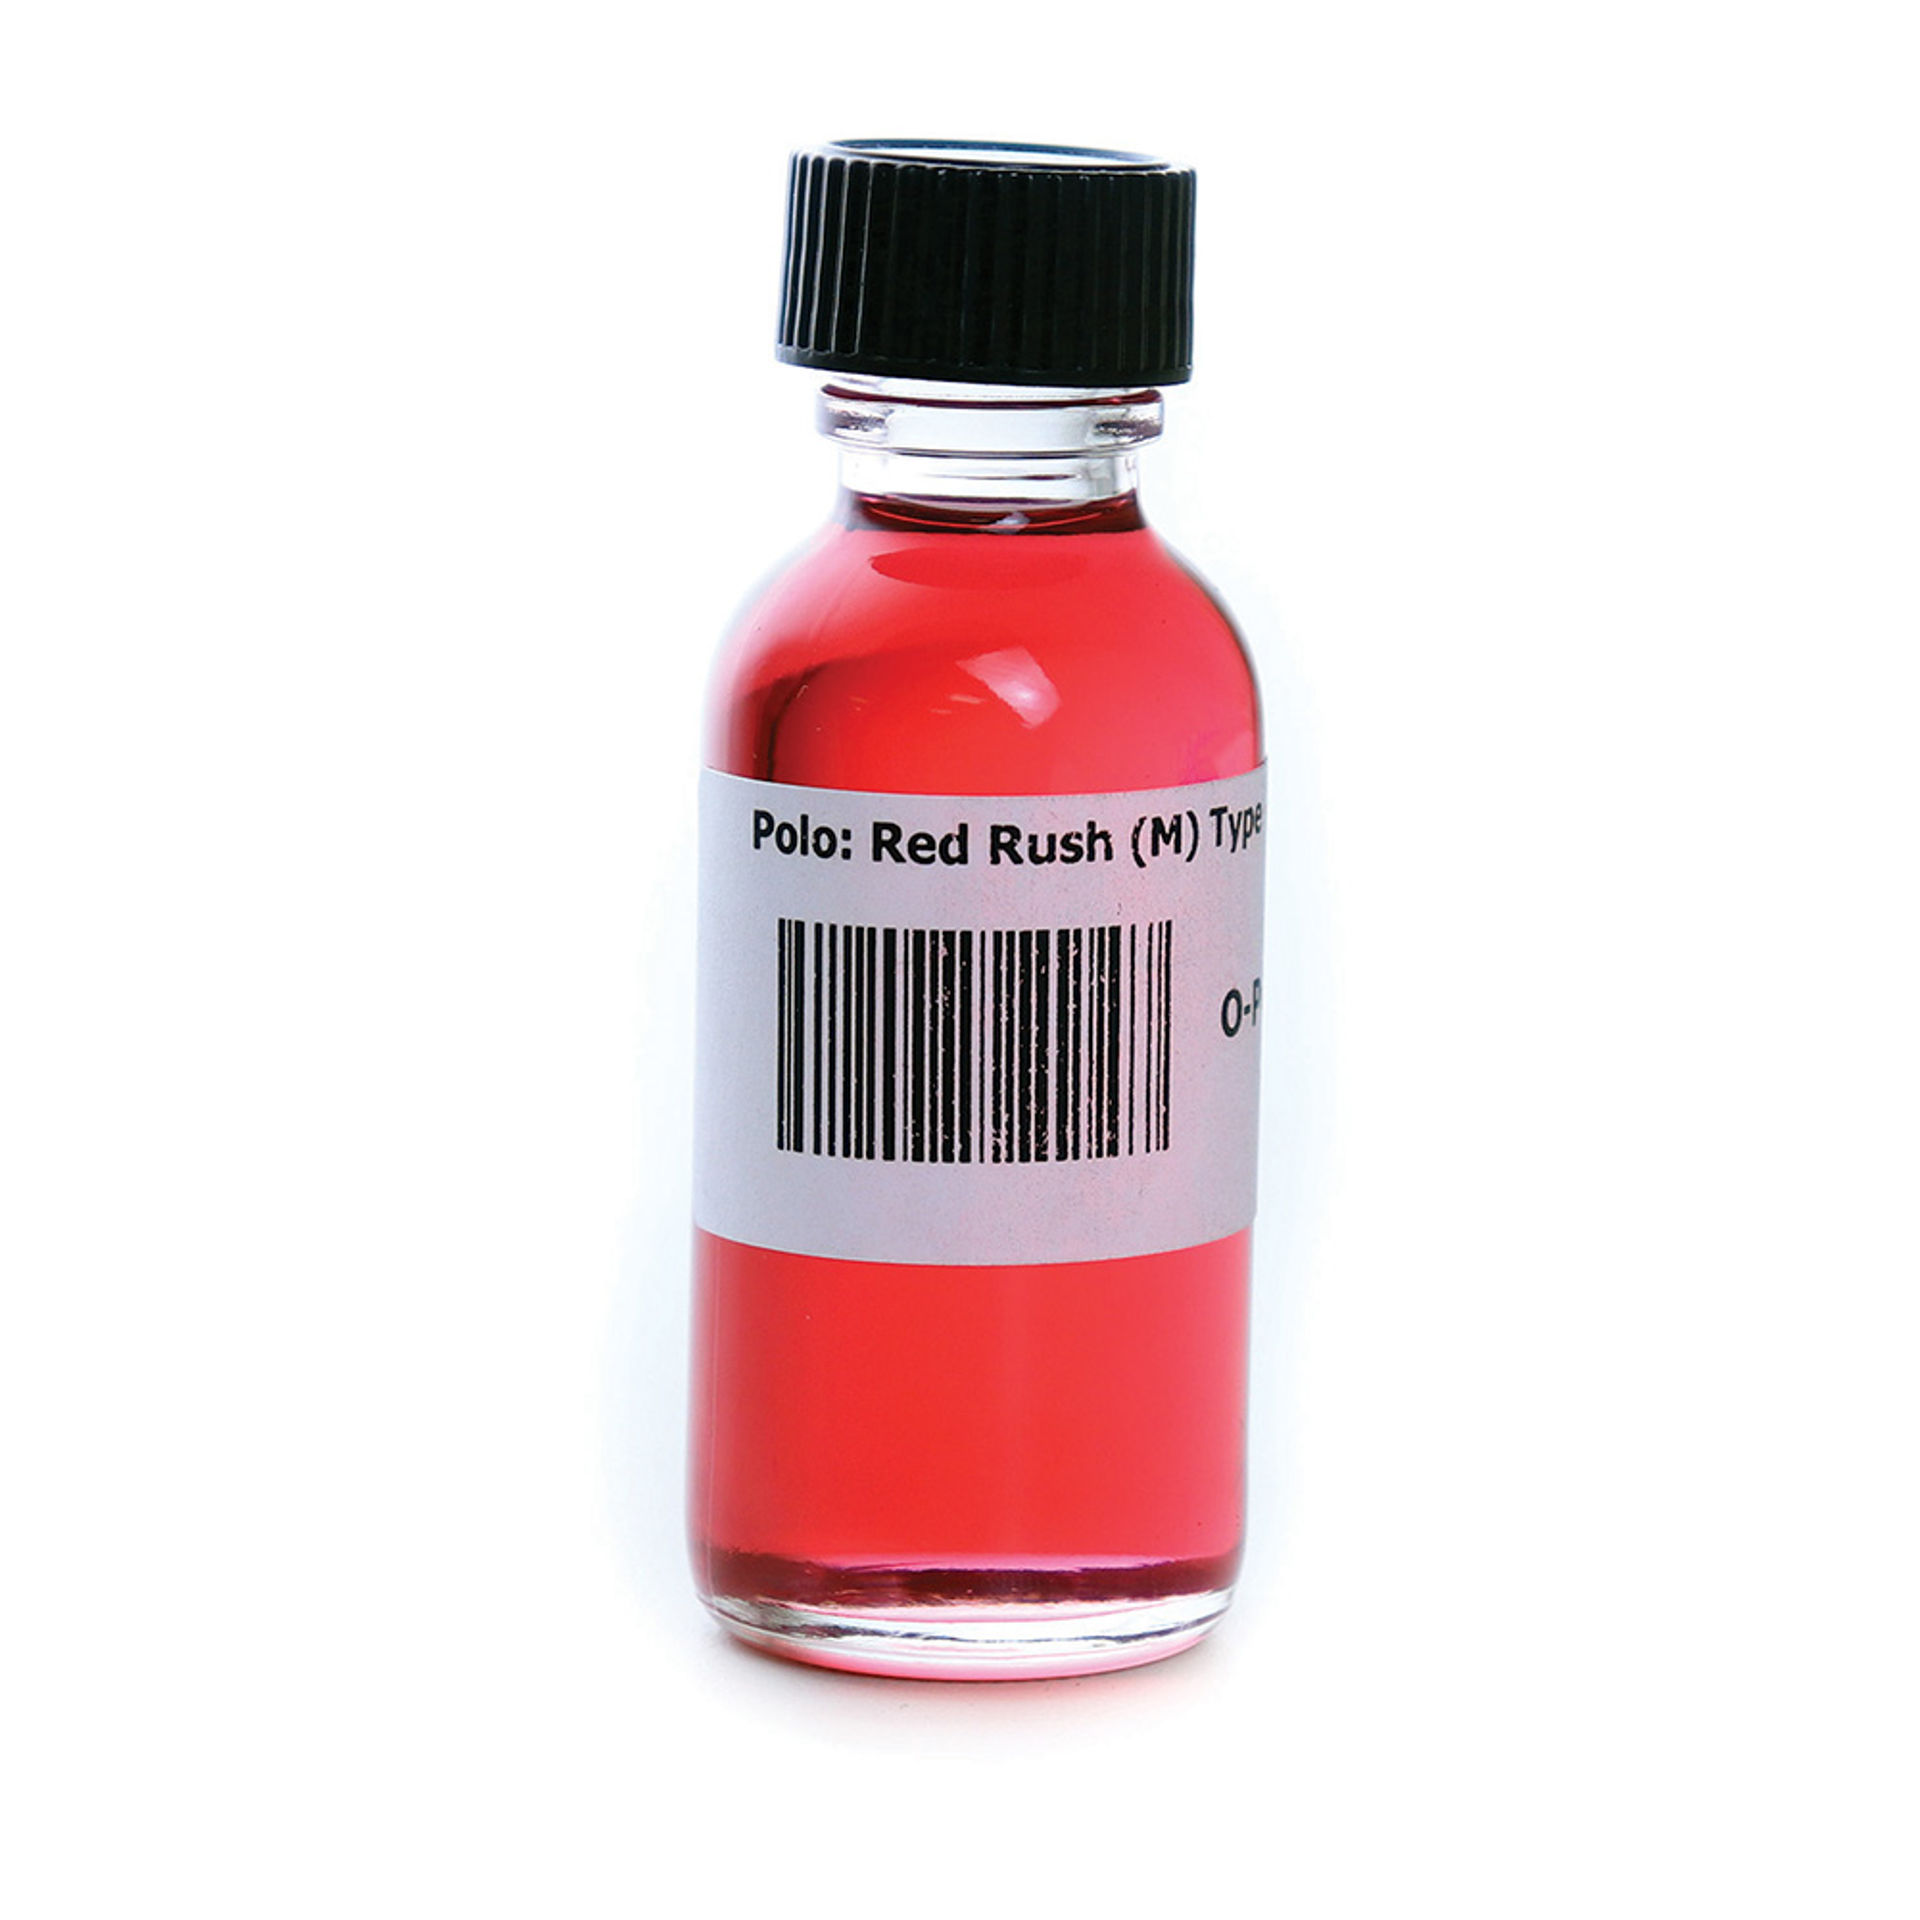 Picture of Polo: Red Rush (M) Type - 1 oz.